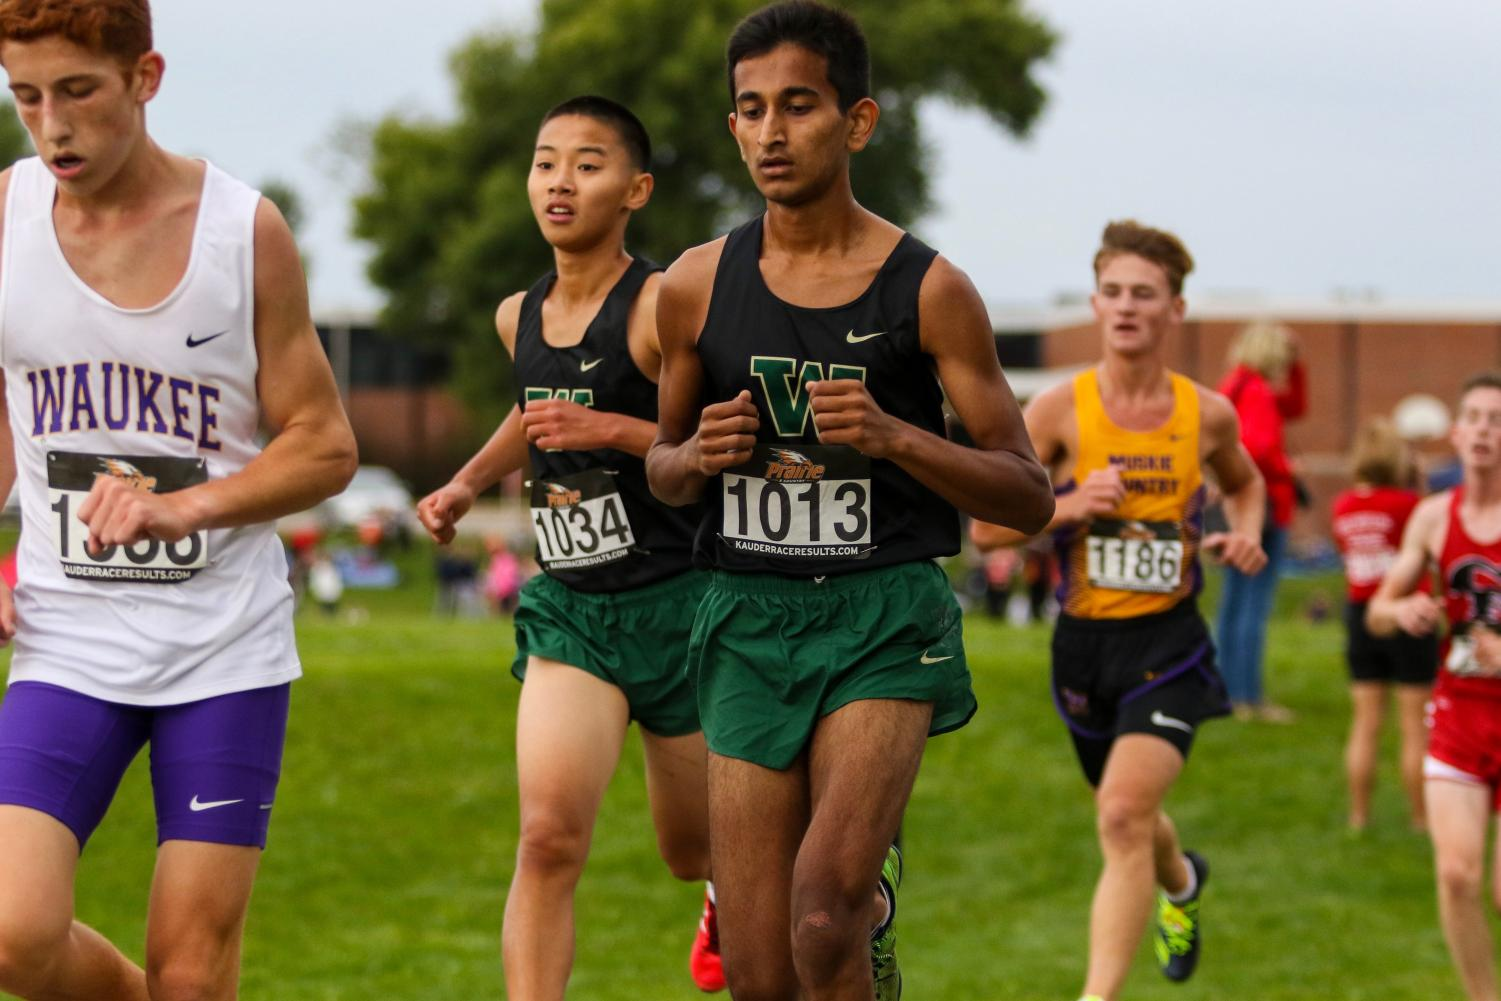 Mohan+Kumar+%2721+finds+a+solid+pace+during+the+Prairie+Invitational+at+Prairie+High+School+on+Aug.+31.